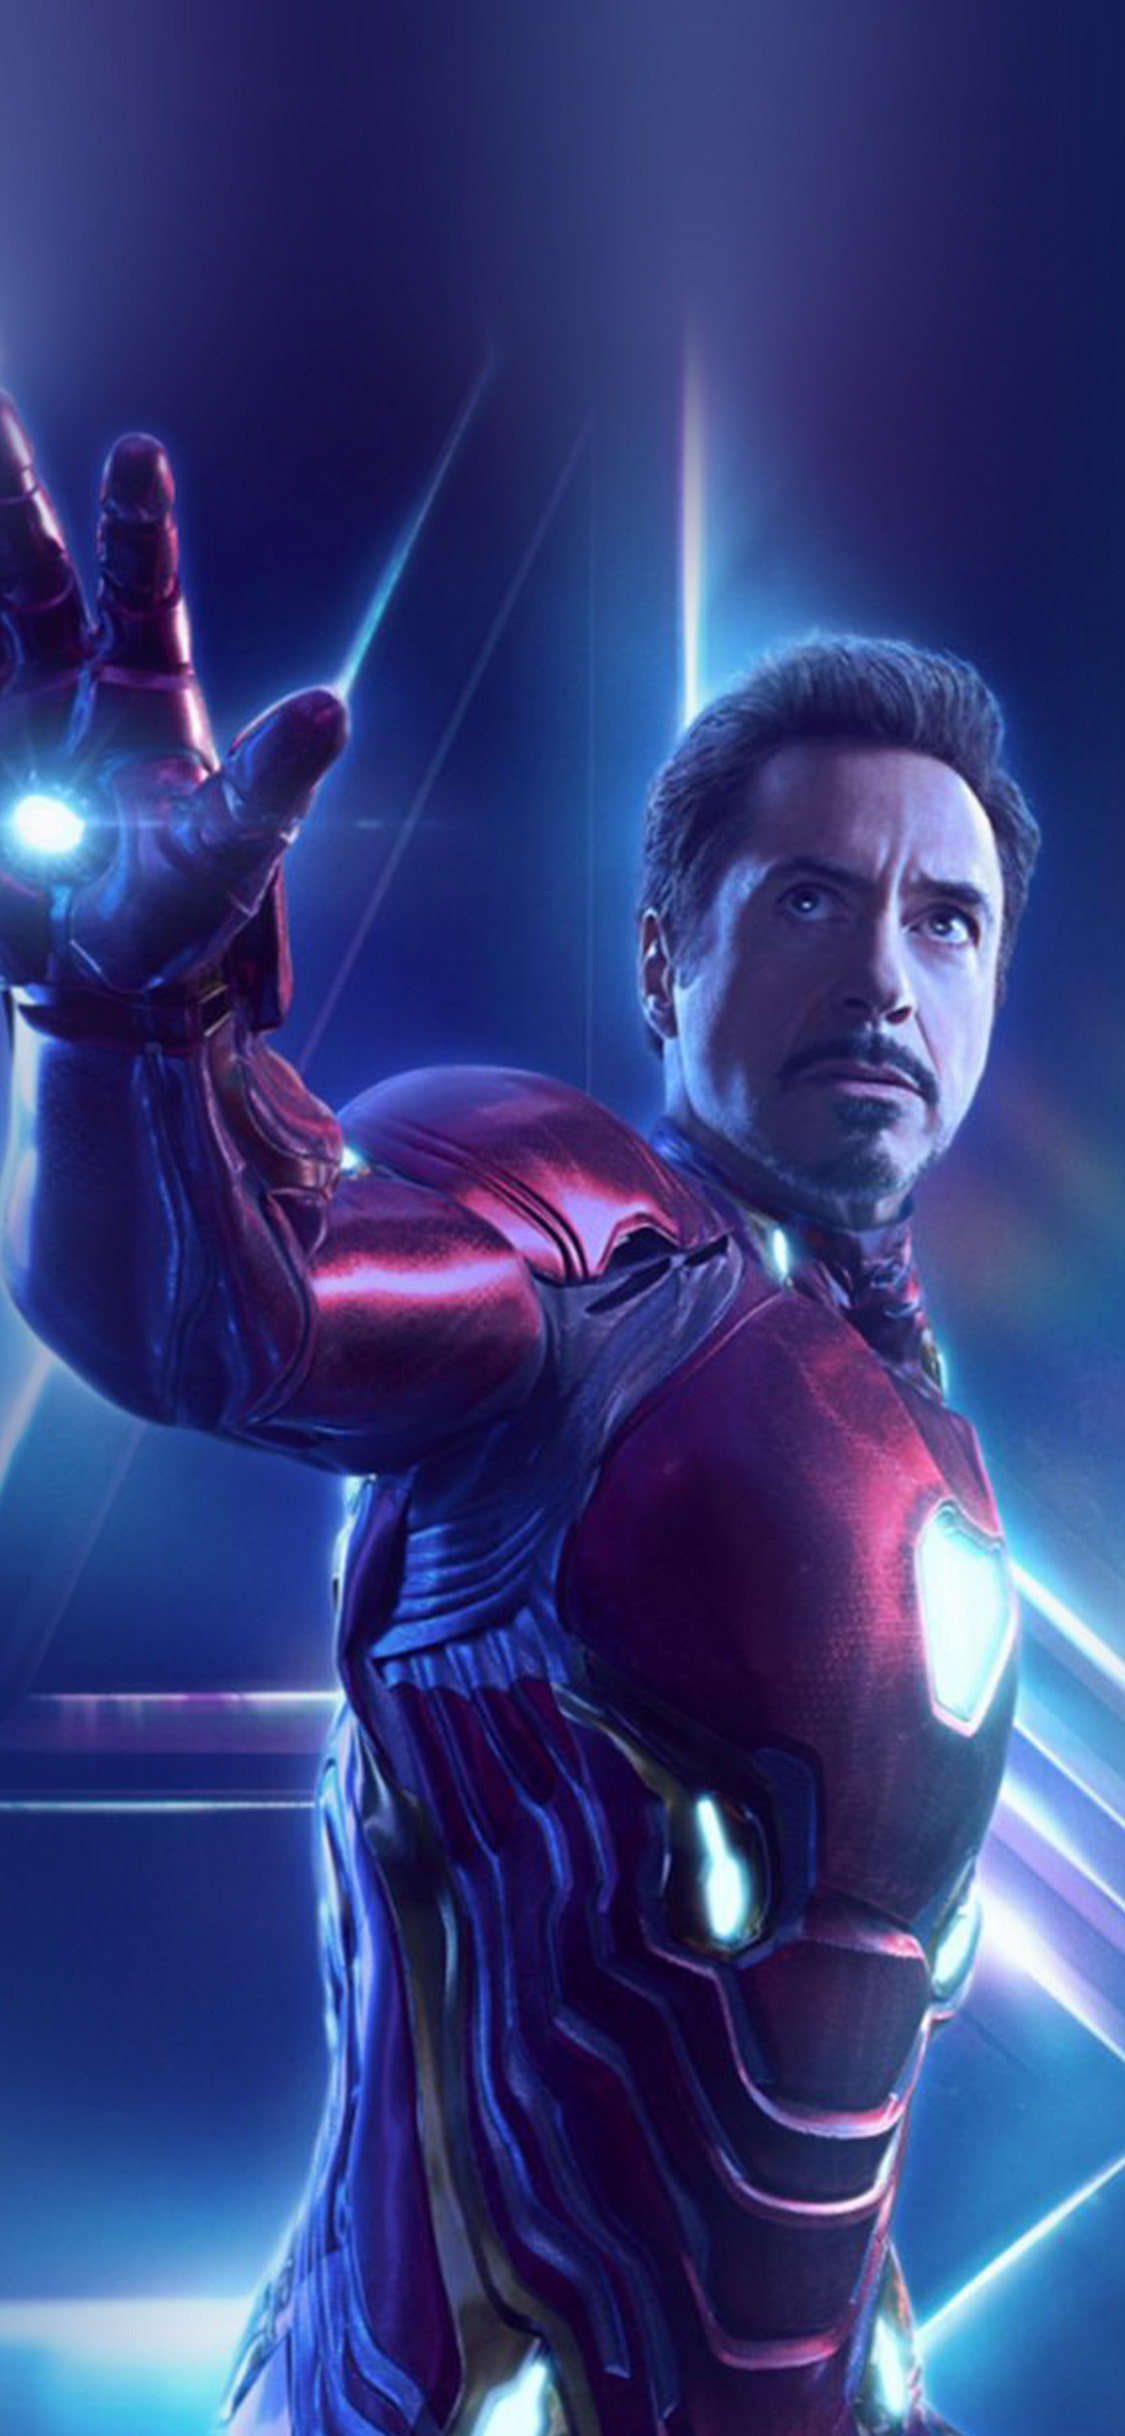 Iphone11papers Com Iphone11 Wallpaper Be89 Ironman Hero Avengers Film Marvel Art